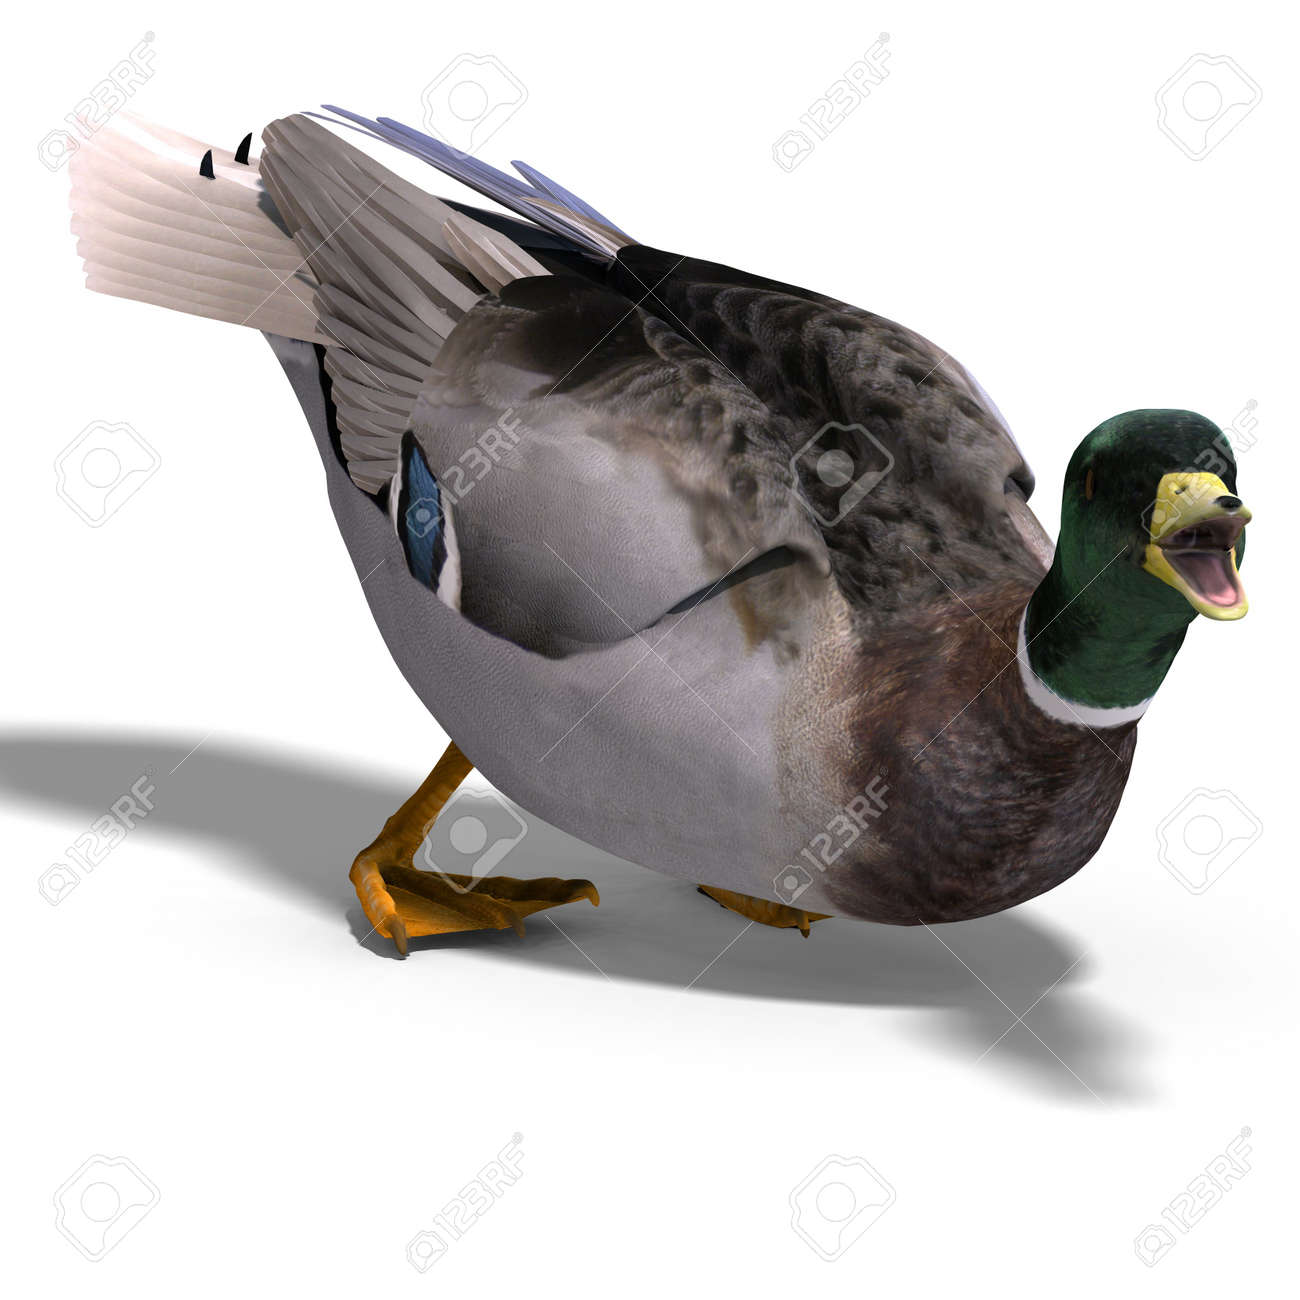 3d rendering of a duck stock photo picture and royalty free image